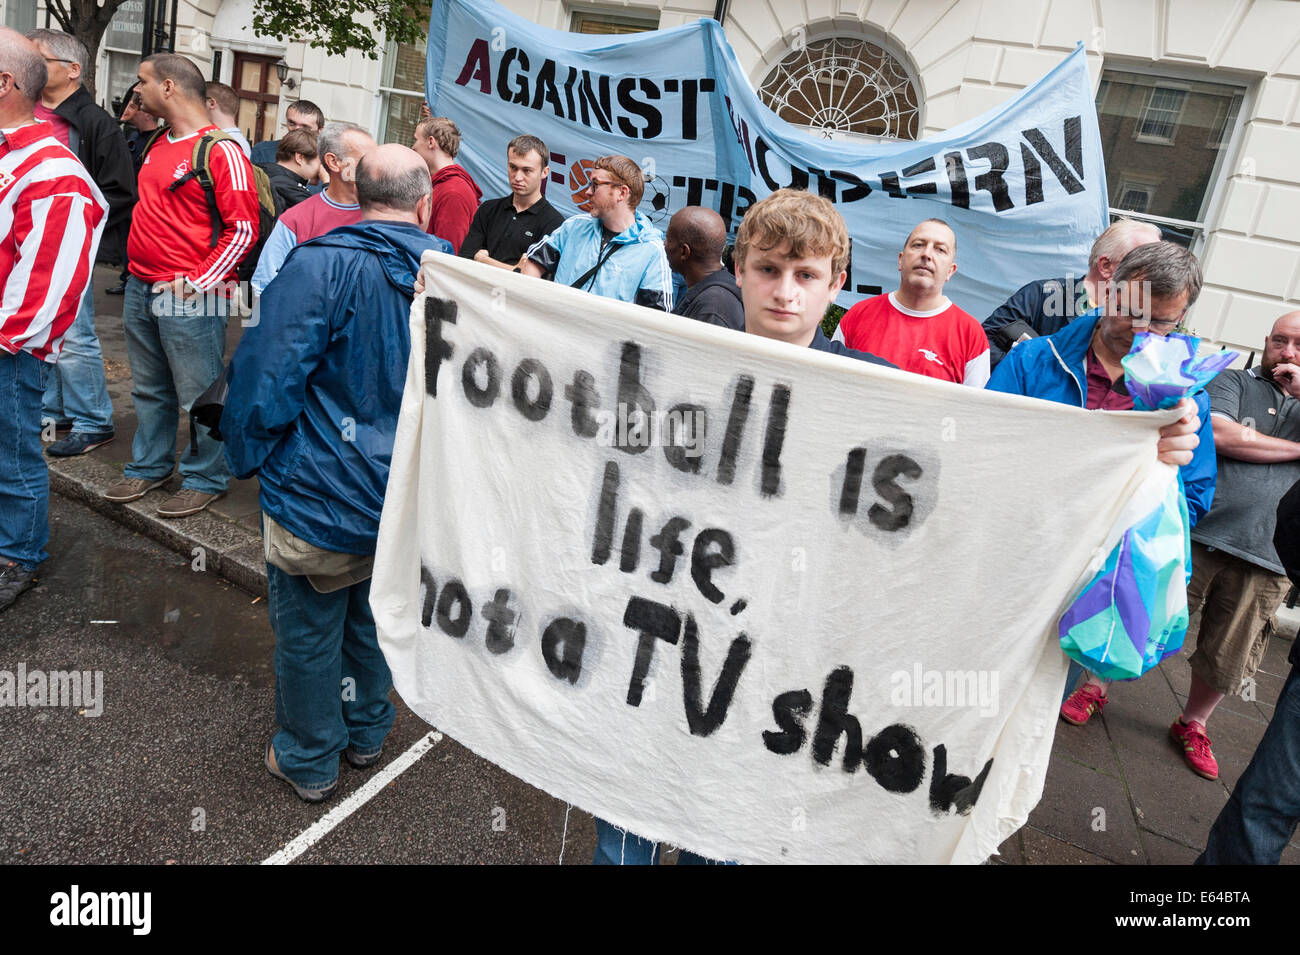 Gloucester Place, London, UK. 14. August 2014. Mitglieder der The Football Supporters Föderation zusammen mit Fans Stockfoto